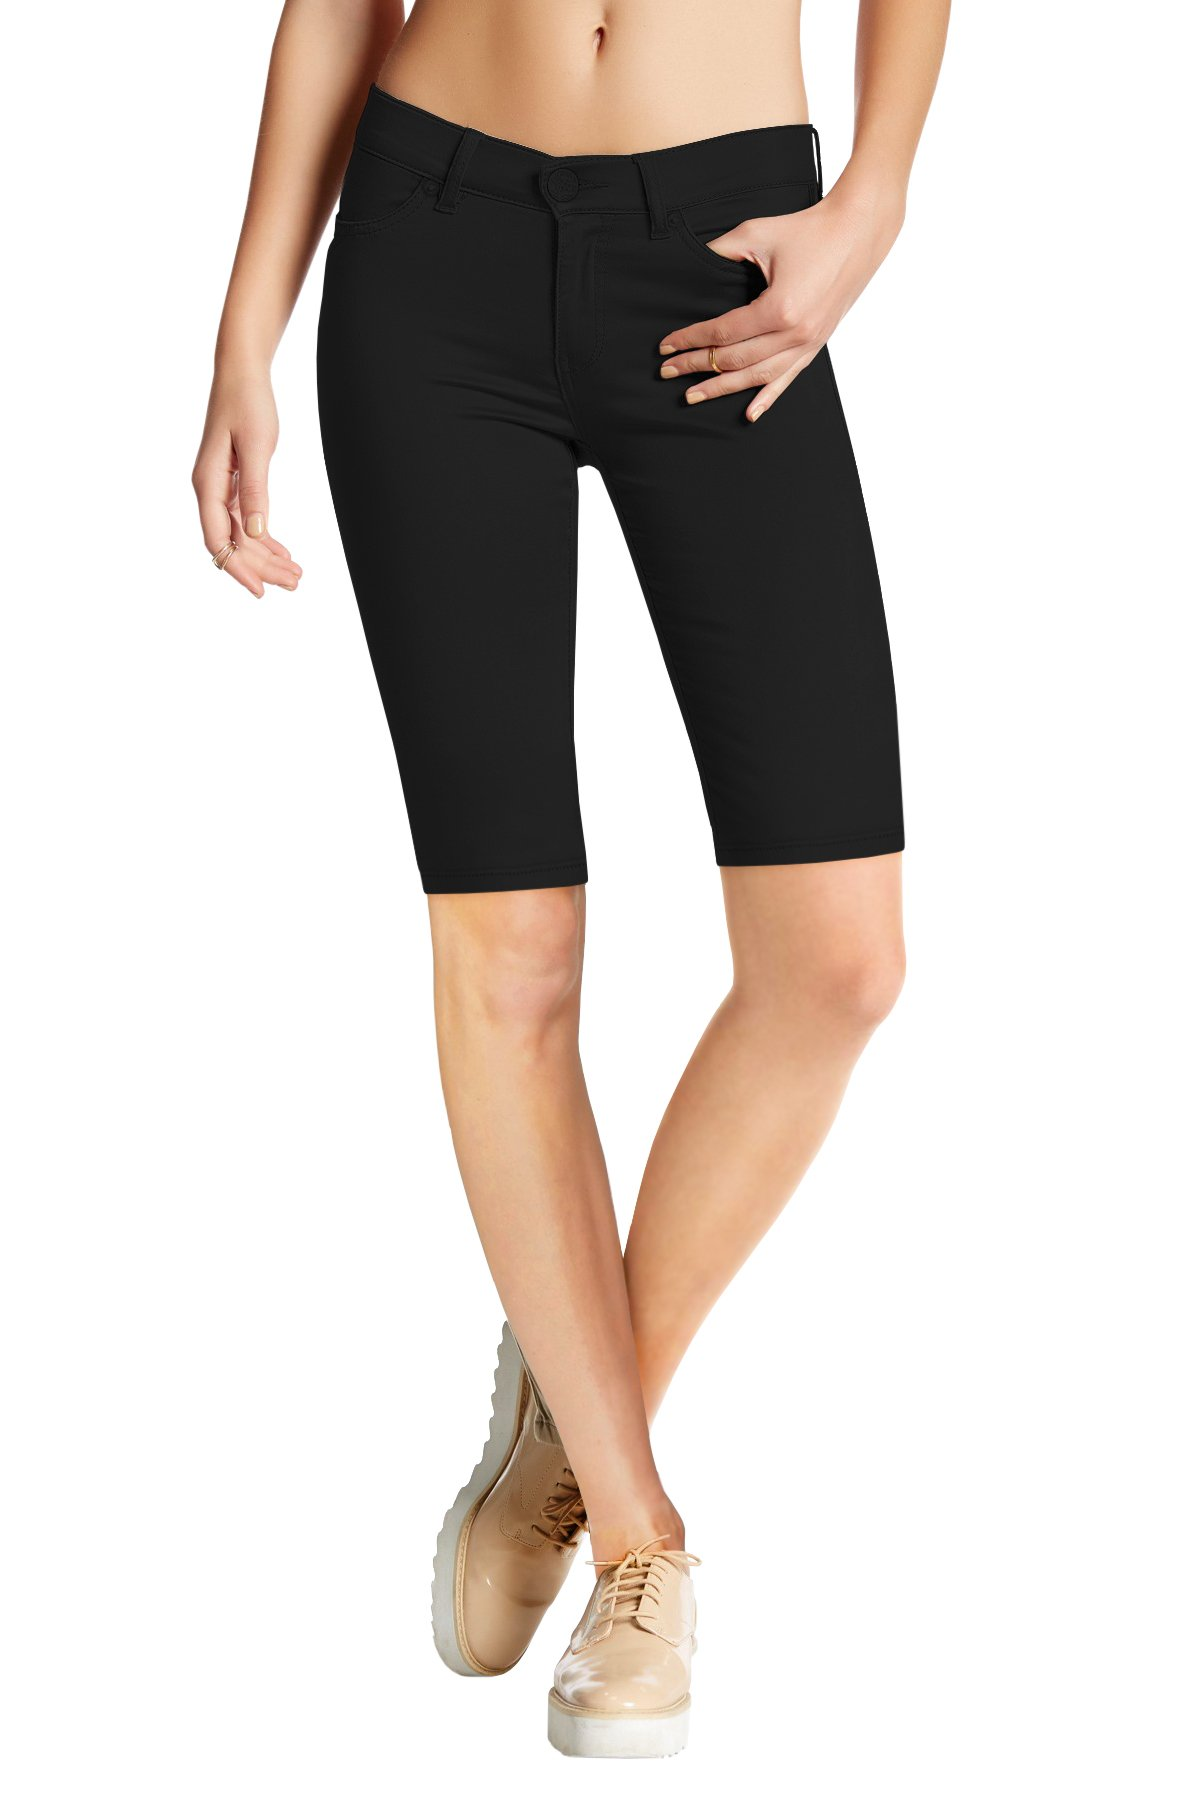 HyBrid & Company Womens Perfectly Shaping Hyper Stretch Bermuda Shorts B44876 Black XLarge